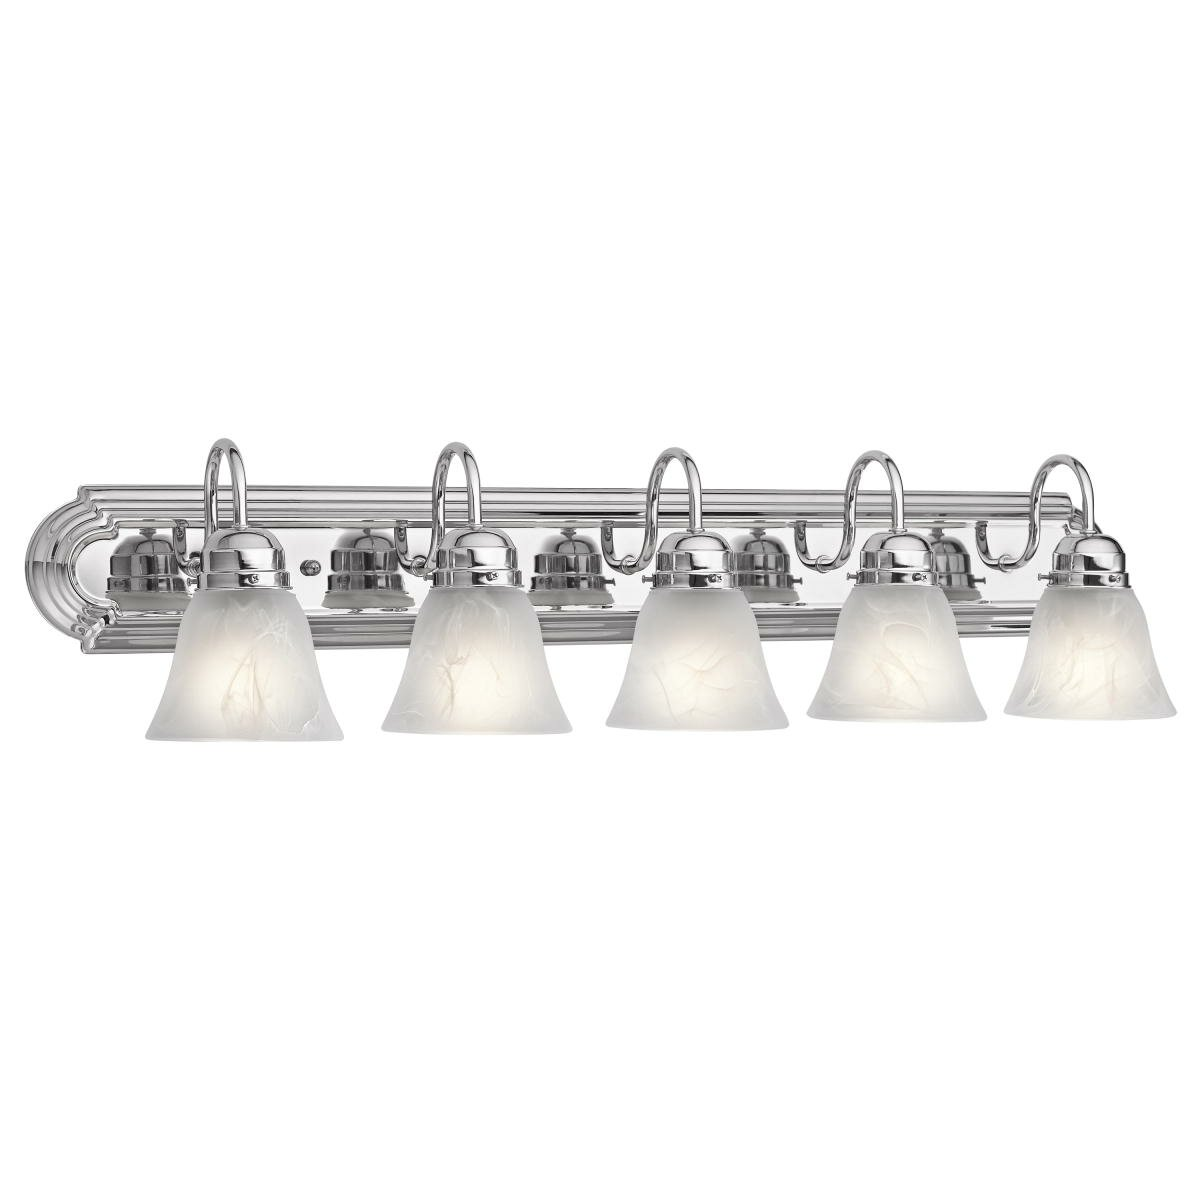 5 Light Bathroom Vanity Light: 5 Light Bath Vanity Light